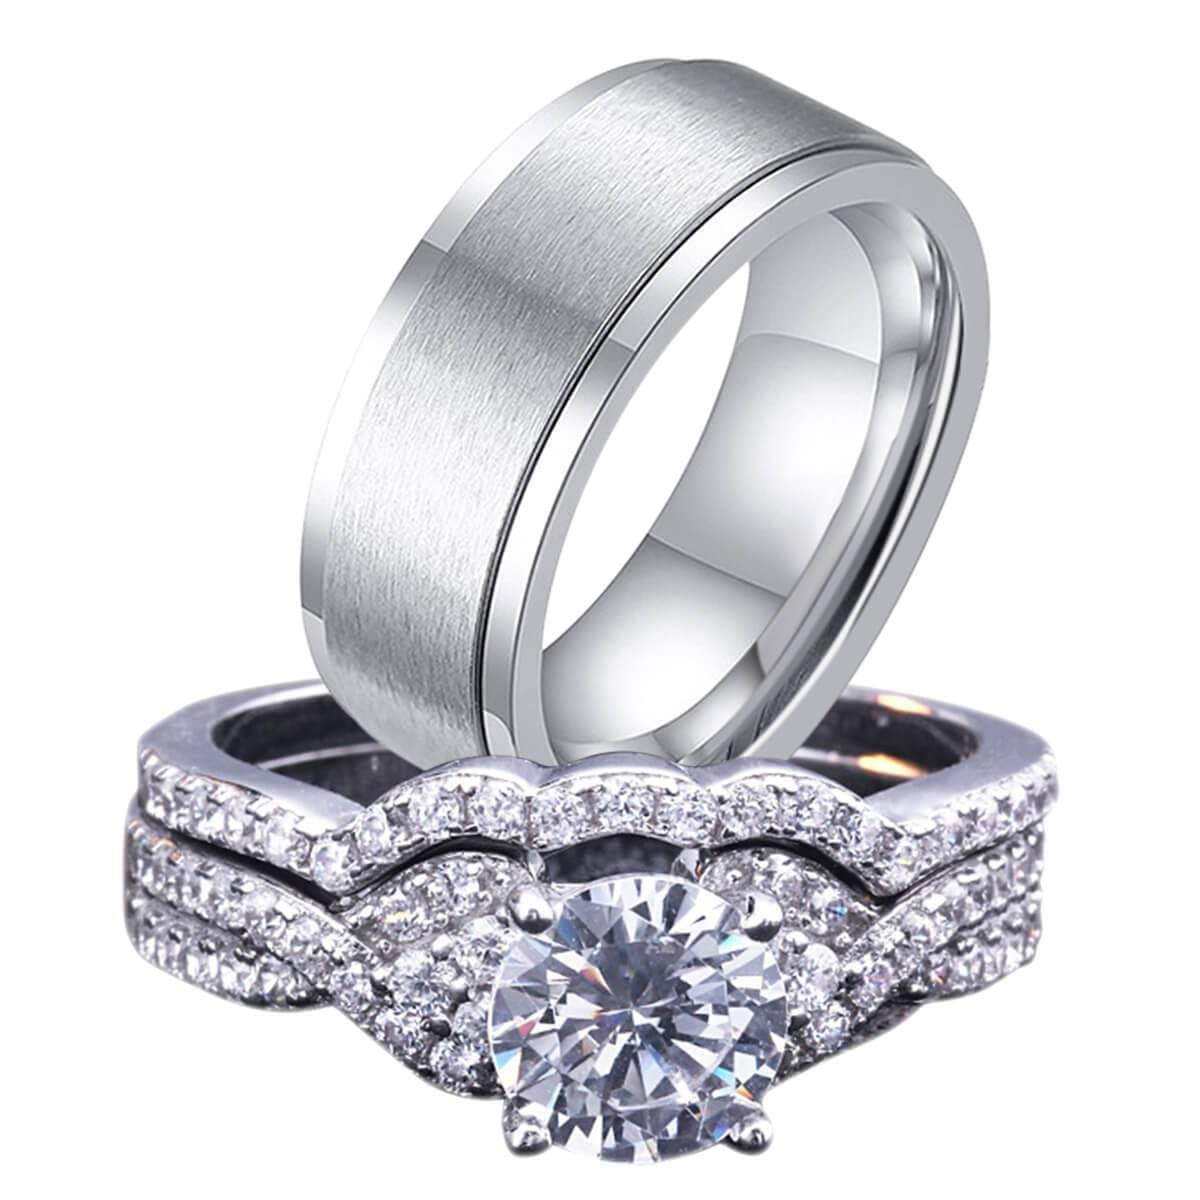 Stainless Steel Rings Men Women Wedding Engagament Rings Sets Crystal